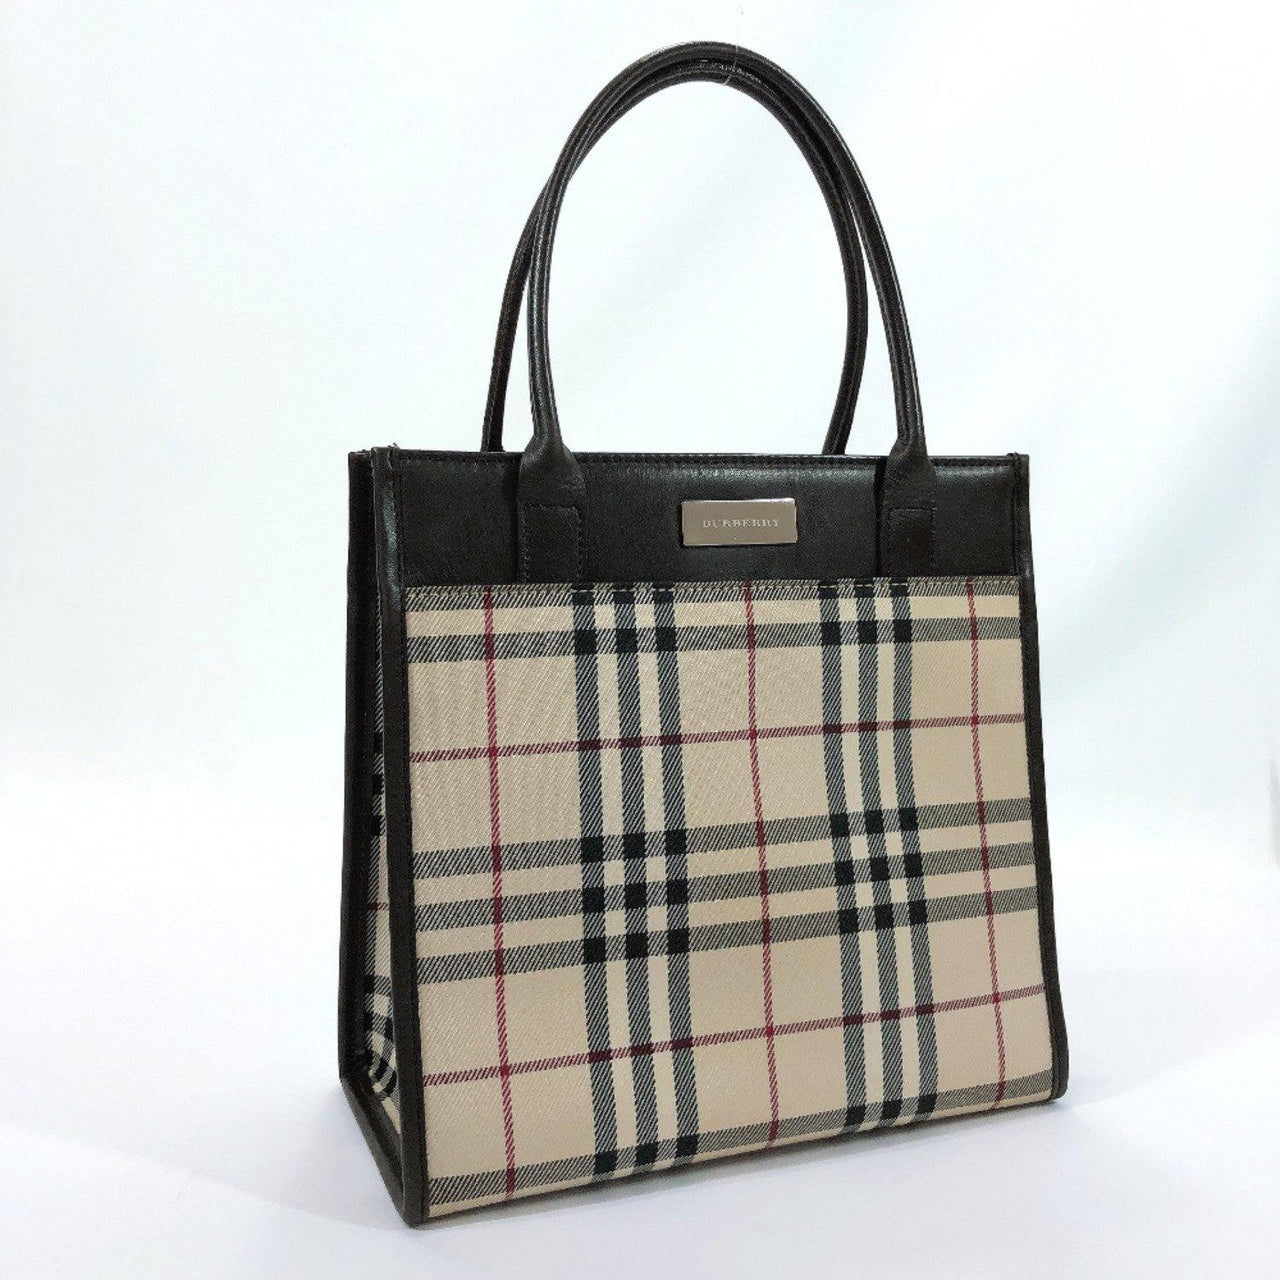 BURBERRY Handbag Burberry check Ikat nylon canvas/leather beige Brown Women Used - JP-BRANDS.com